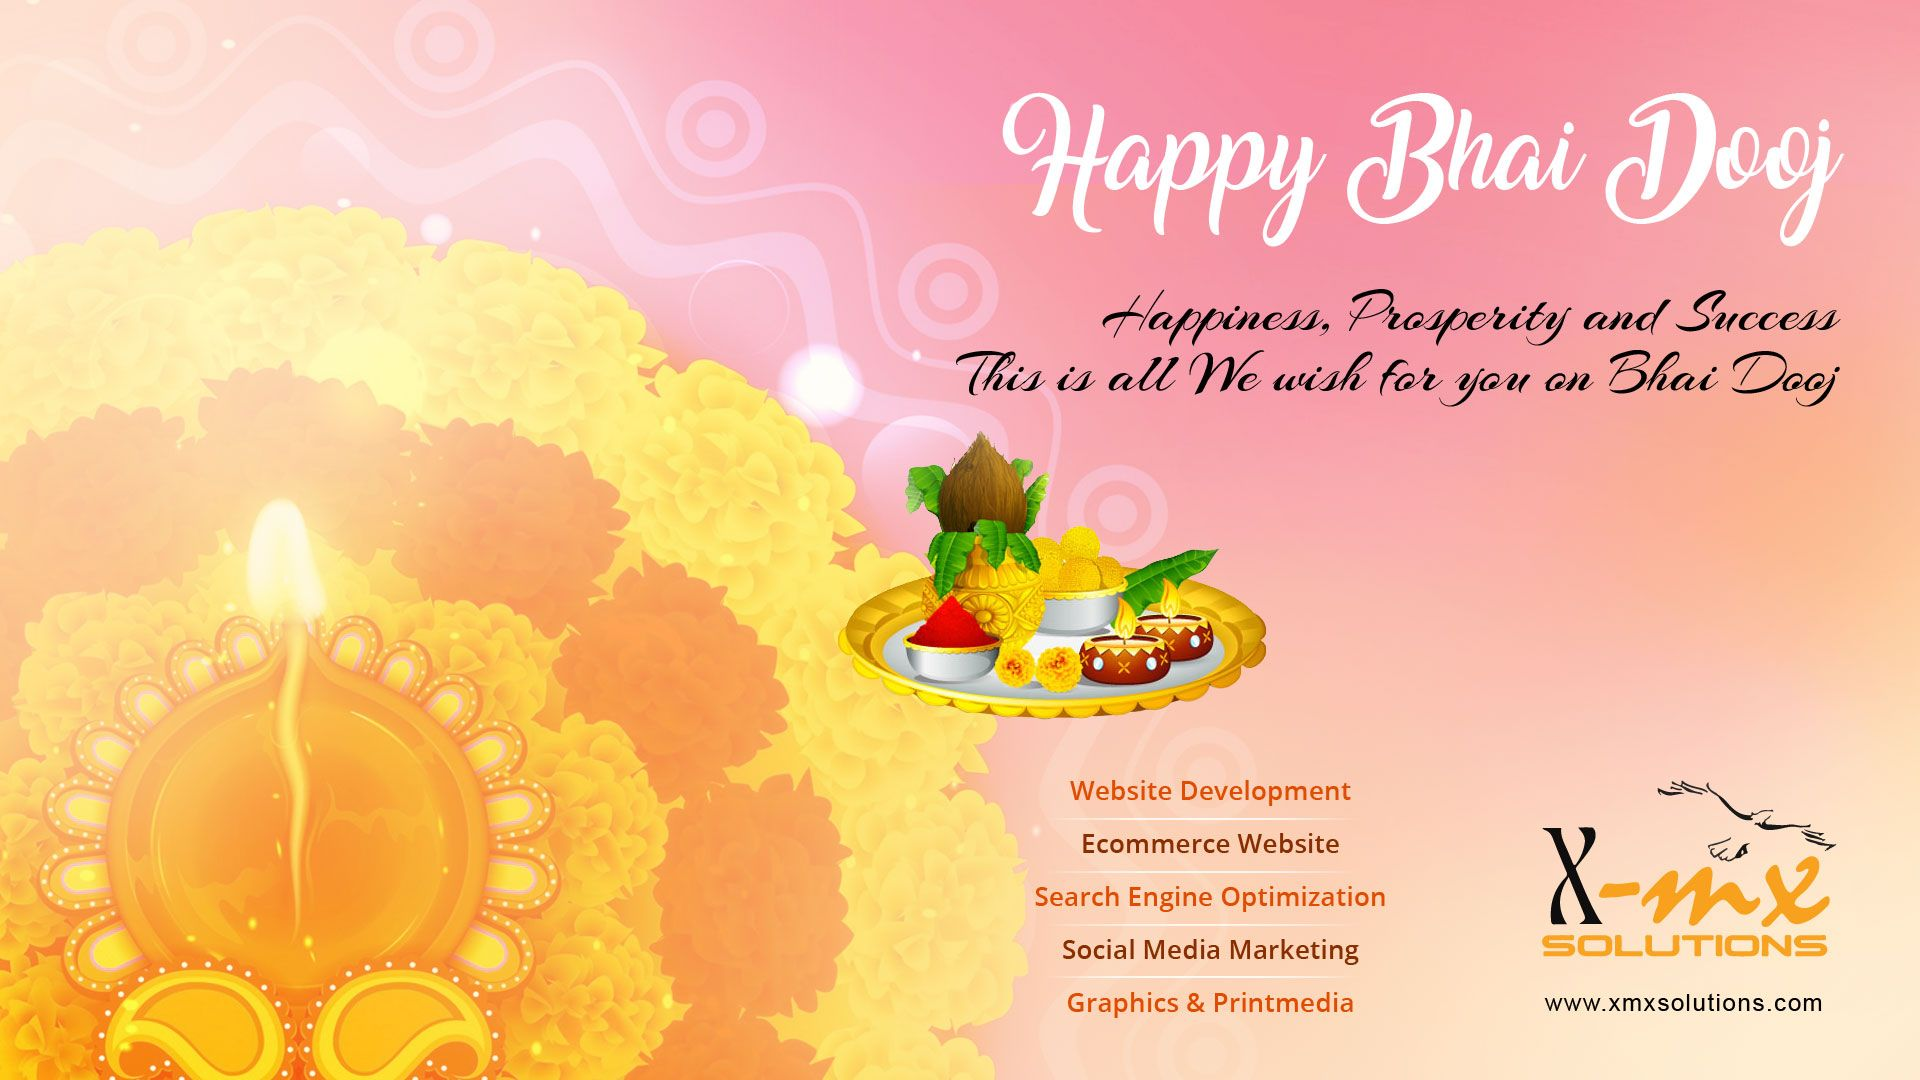 May This Bhai Dooj Strengthen Your Bond Fill Your Lives With